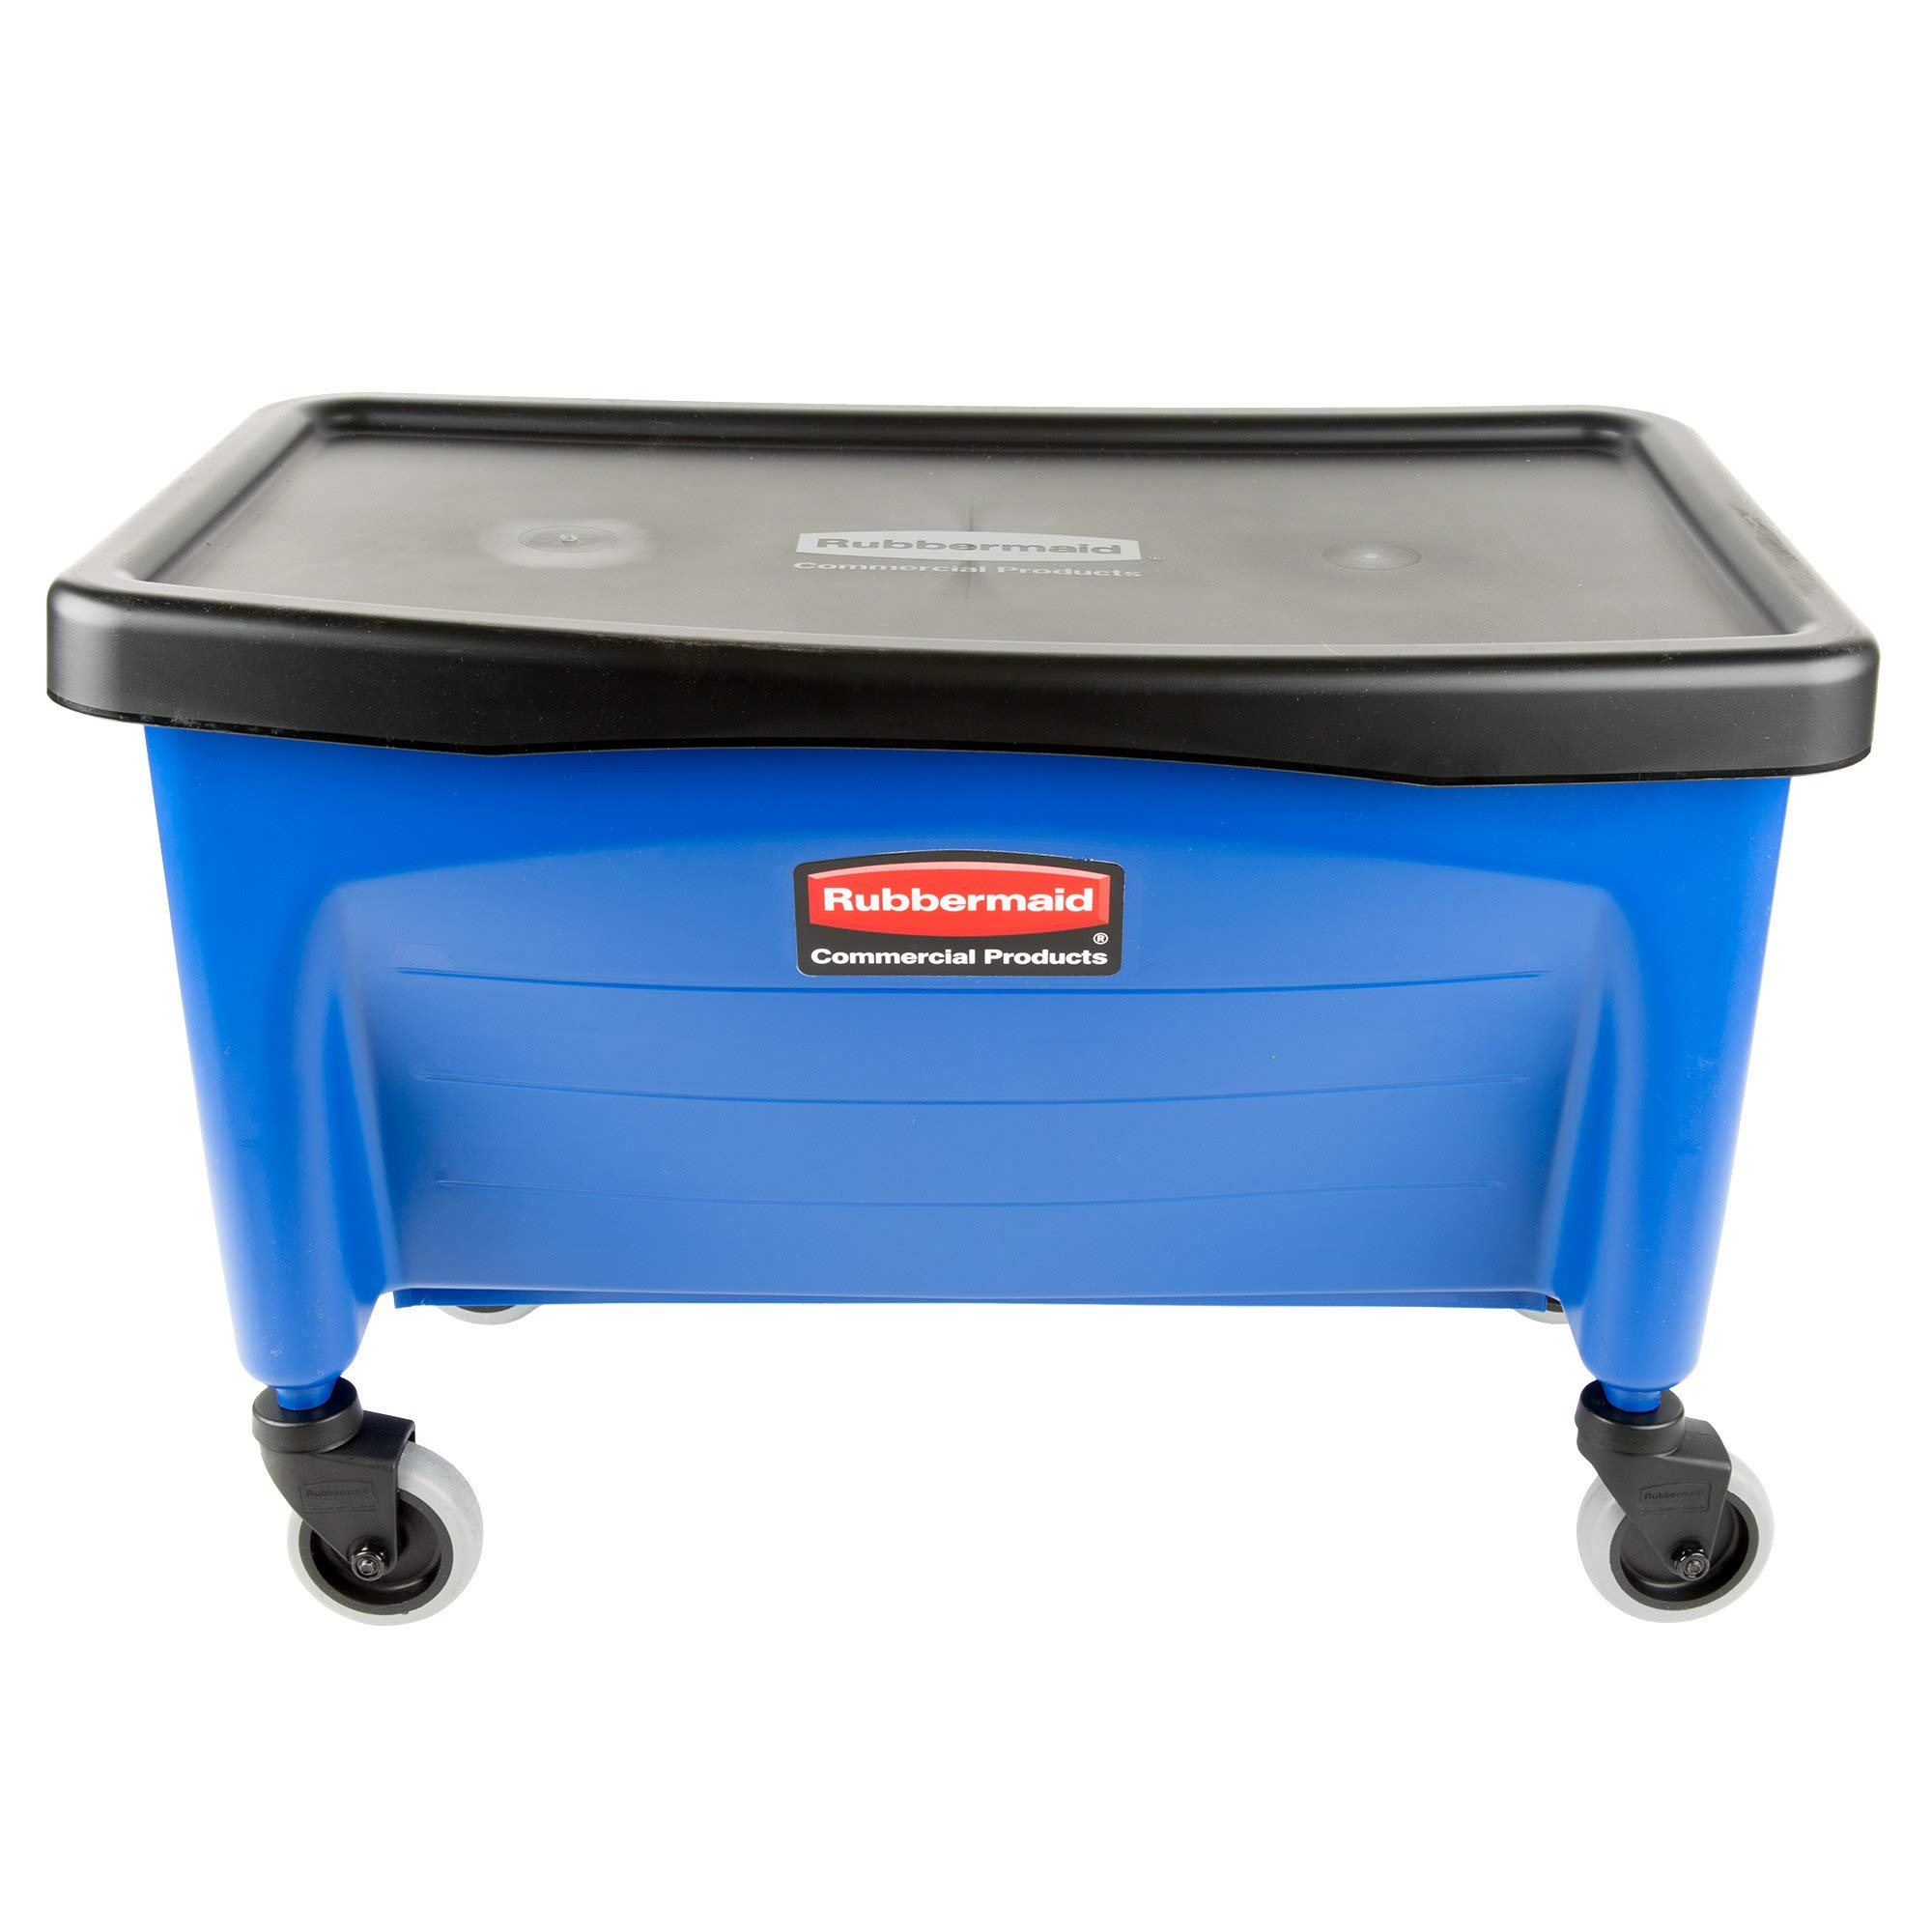 Rubbermaid Commercial Finish Mop Bucket with Wringer, 28-Quart, Blue by Rubbermaid Commercial Products